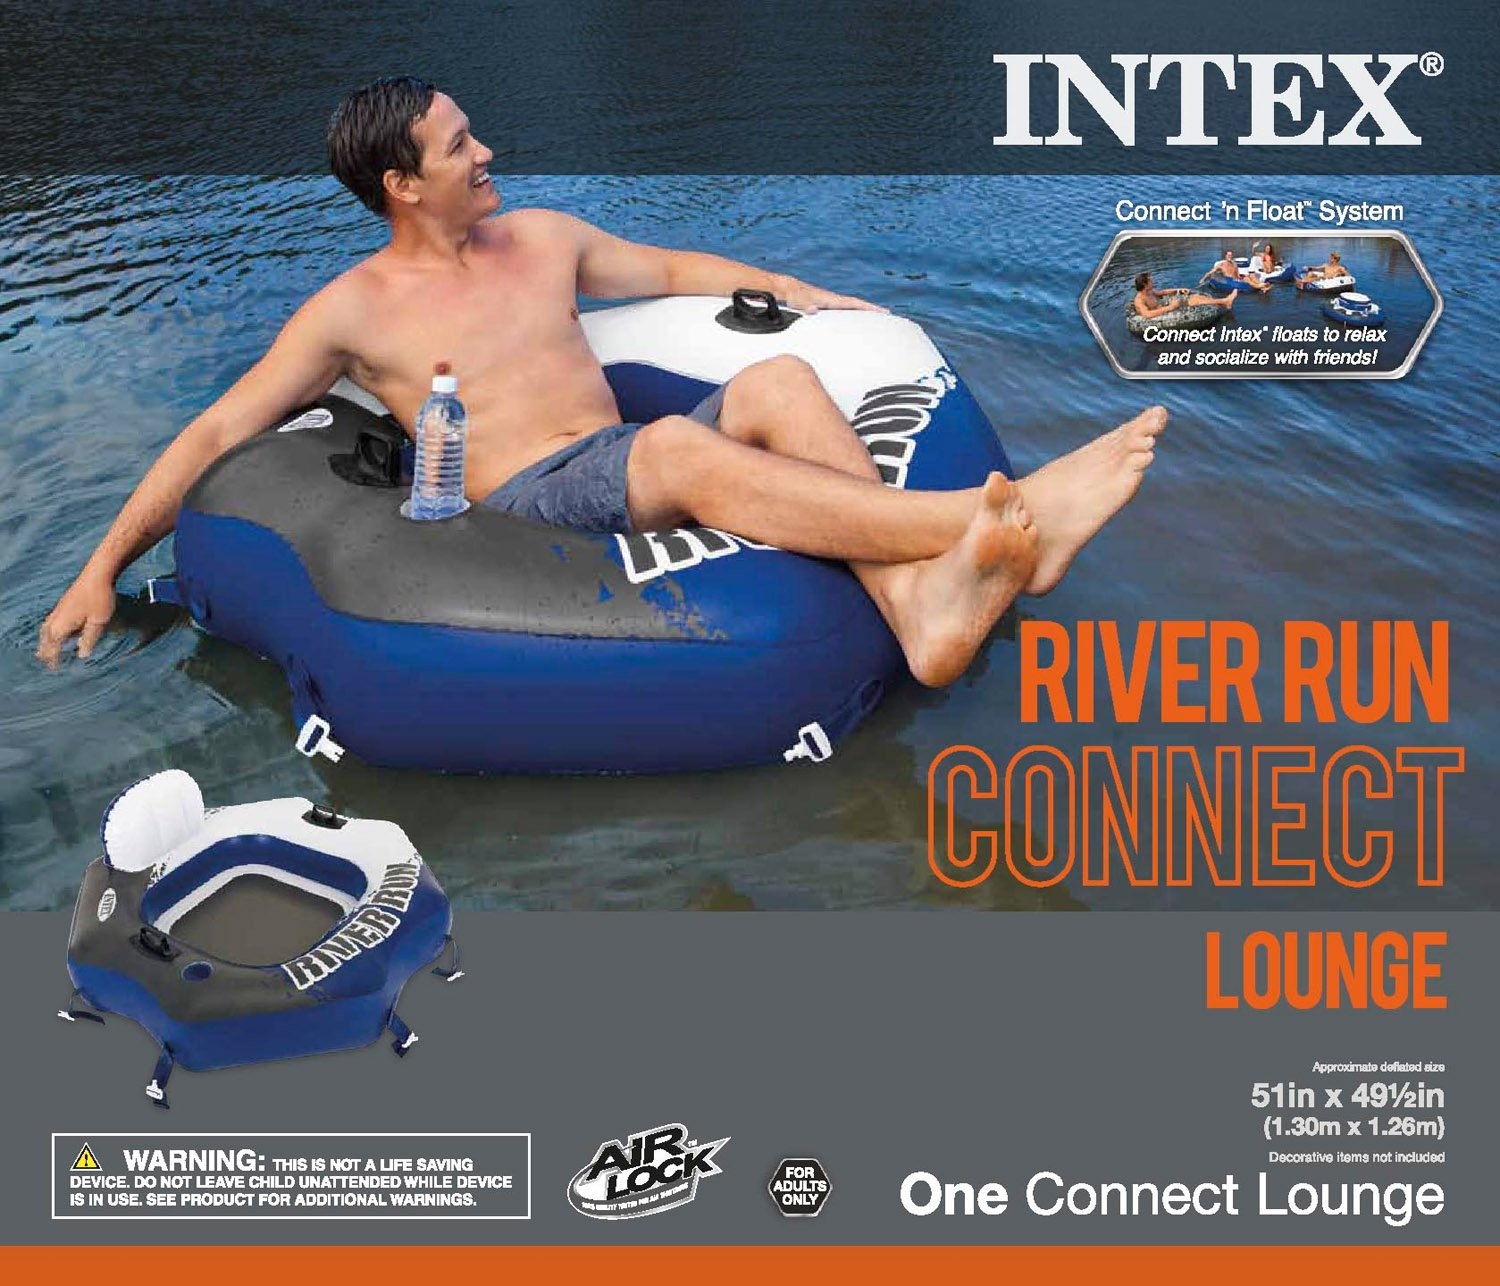 Intex River Run Inflatable Lounge Tube, 4 Pack & Inflatable Cooler Float, 2 Pack by Intex (Image #9)